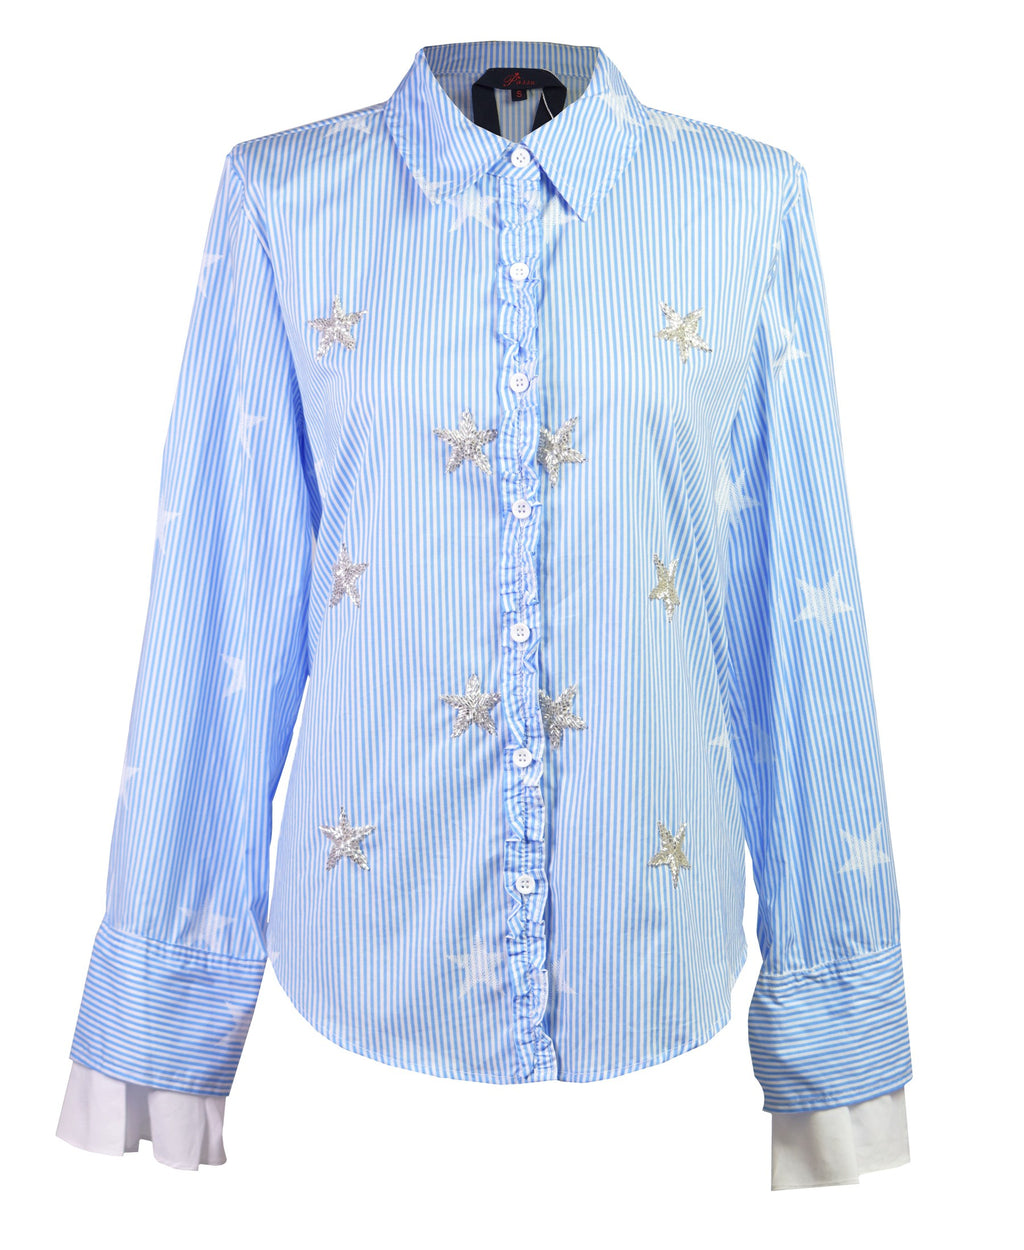 Star-embroidery striped shirt